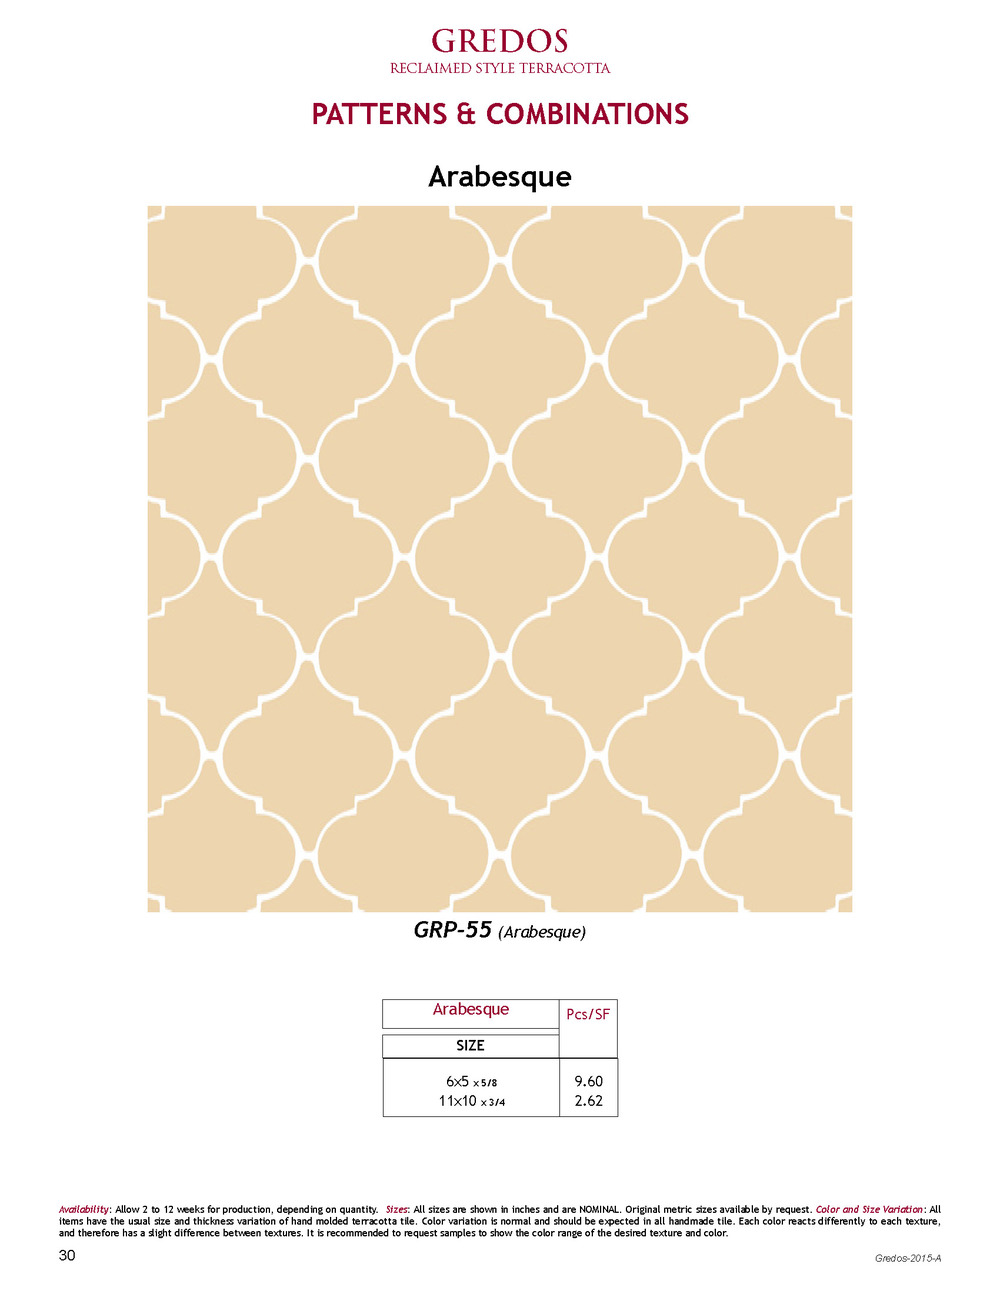 2-Gredos-Patterns&Combinations2015-A_Page_30.jpg